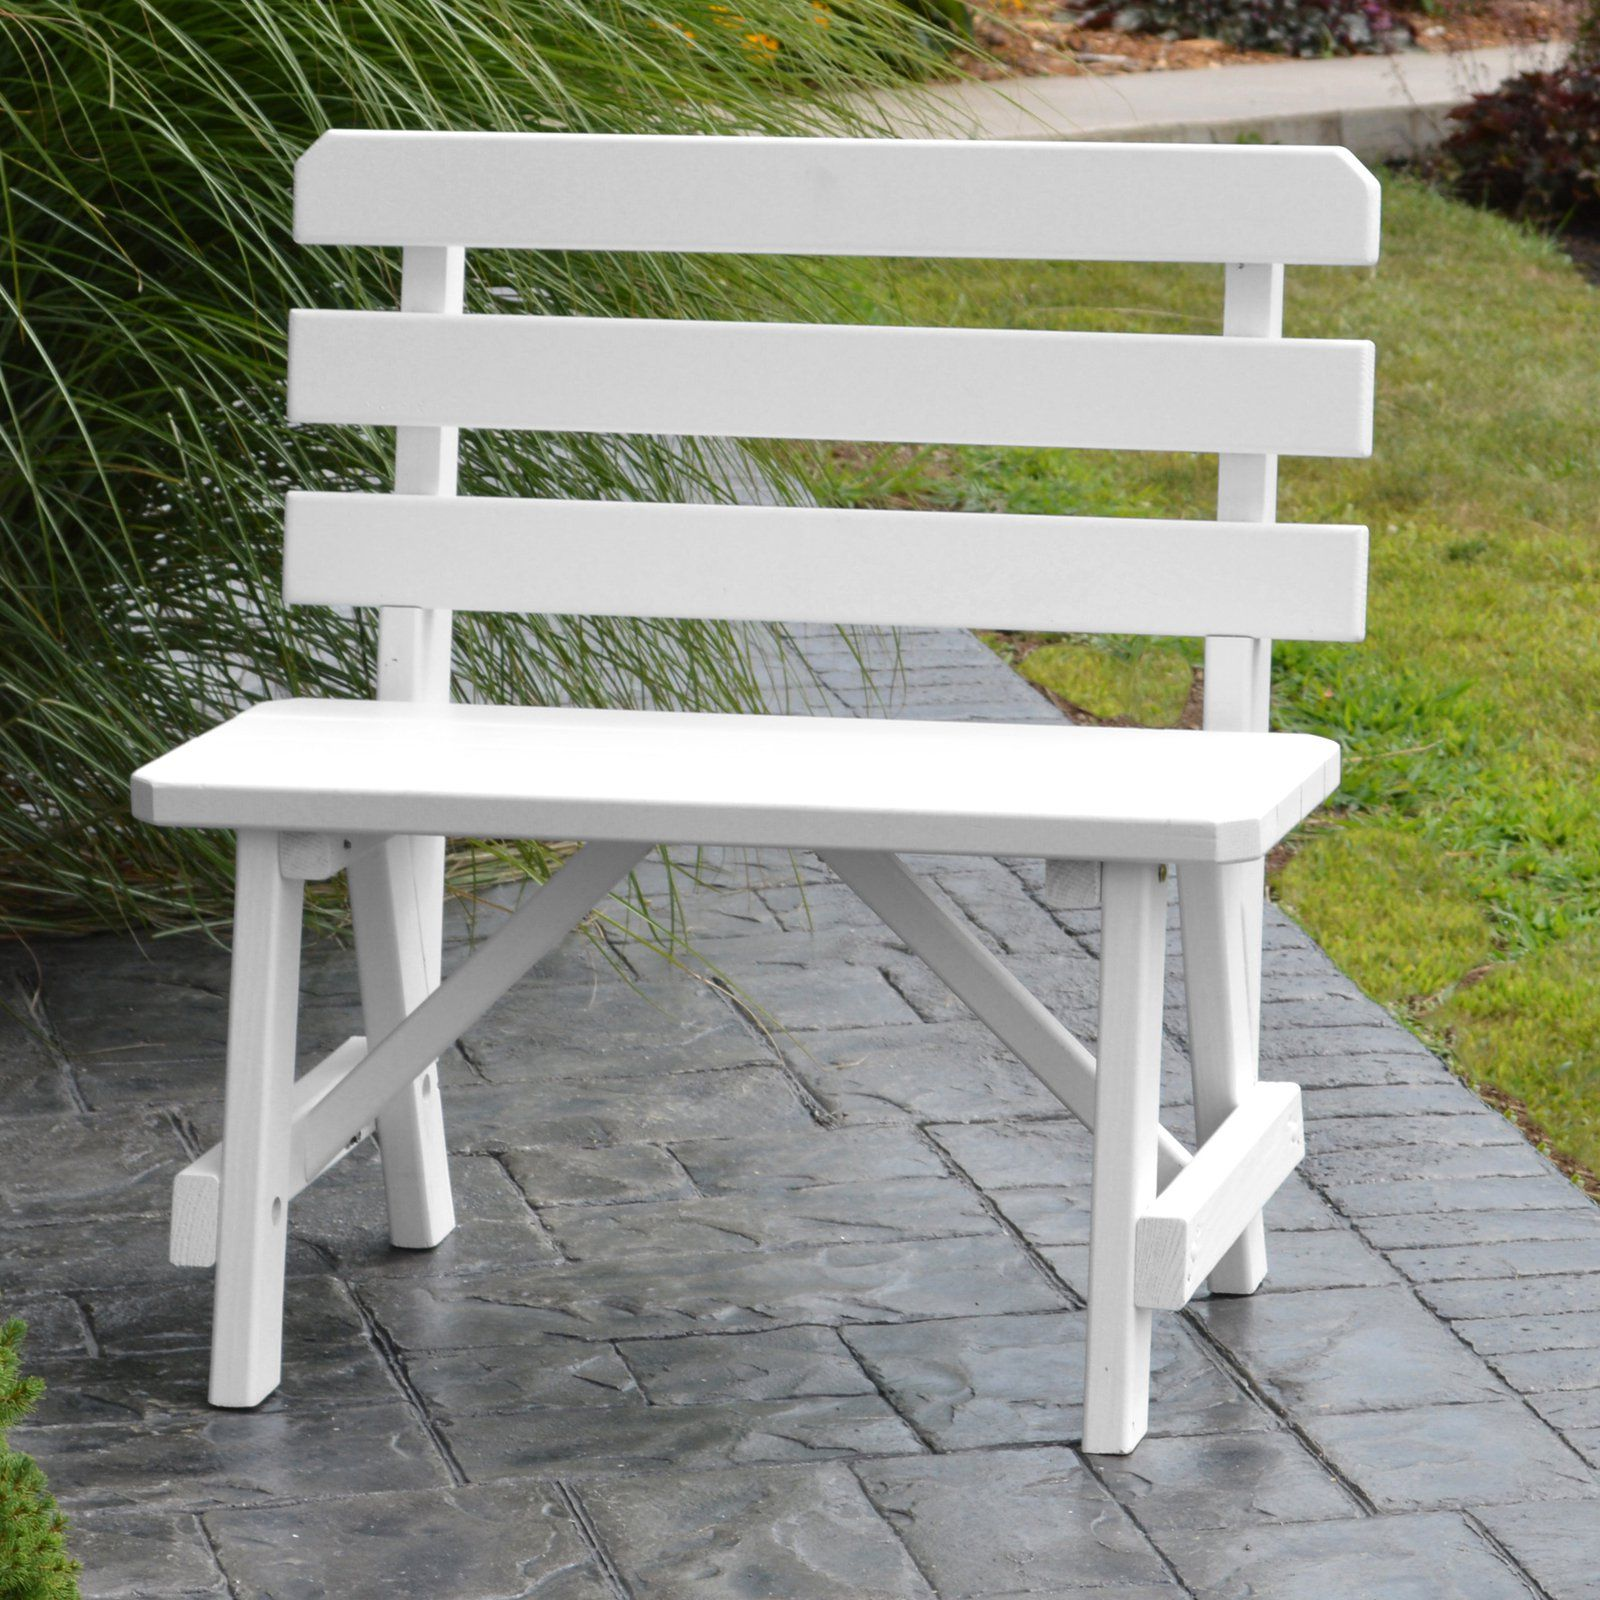 Outdoor A L Furniture Yellow Pine Traditional Backed Bench Red Tractor Red In 2020 Used Outdoor Furniture Outdoor Christmas Decorations Furniture